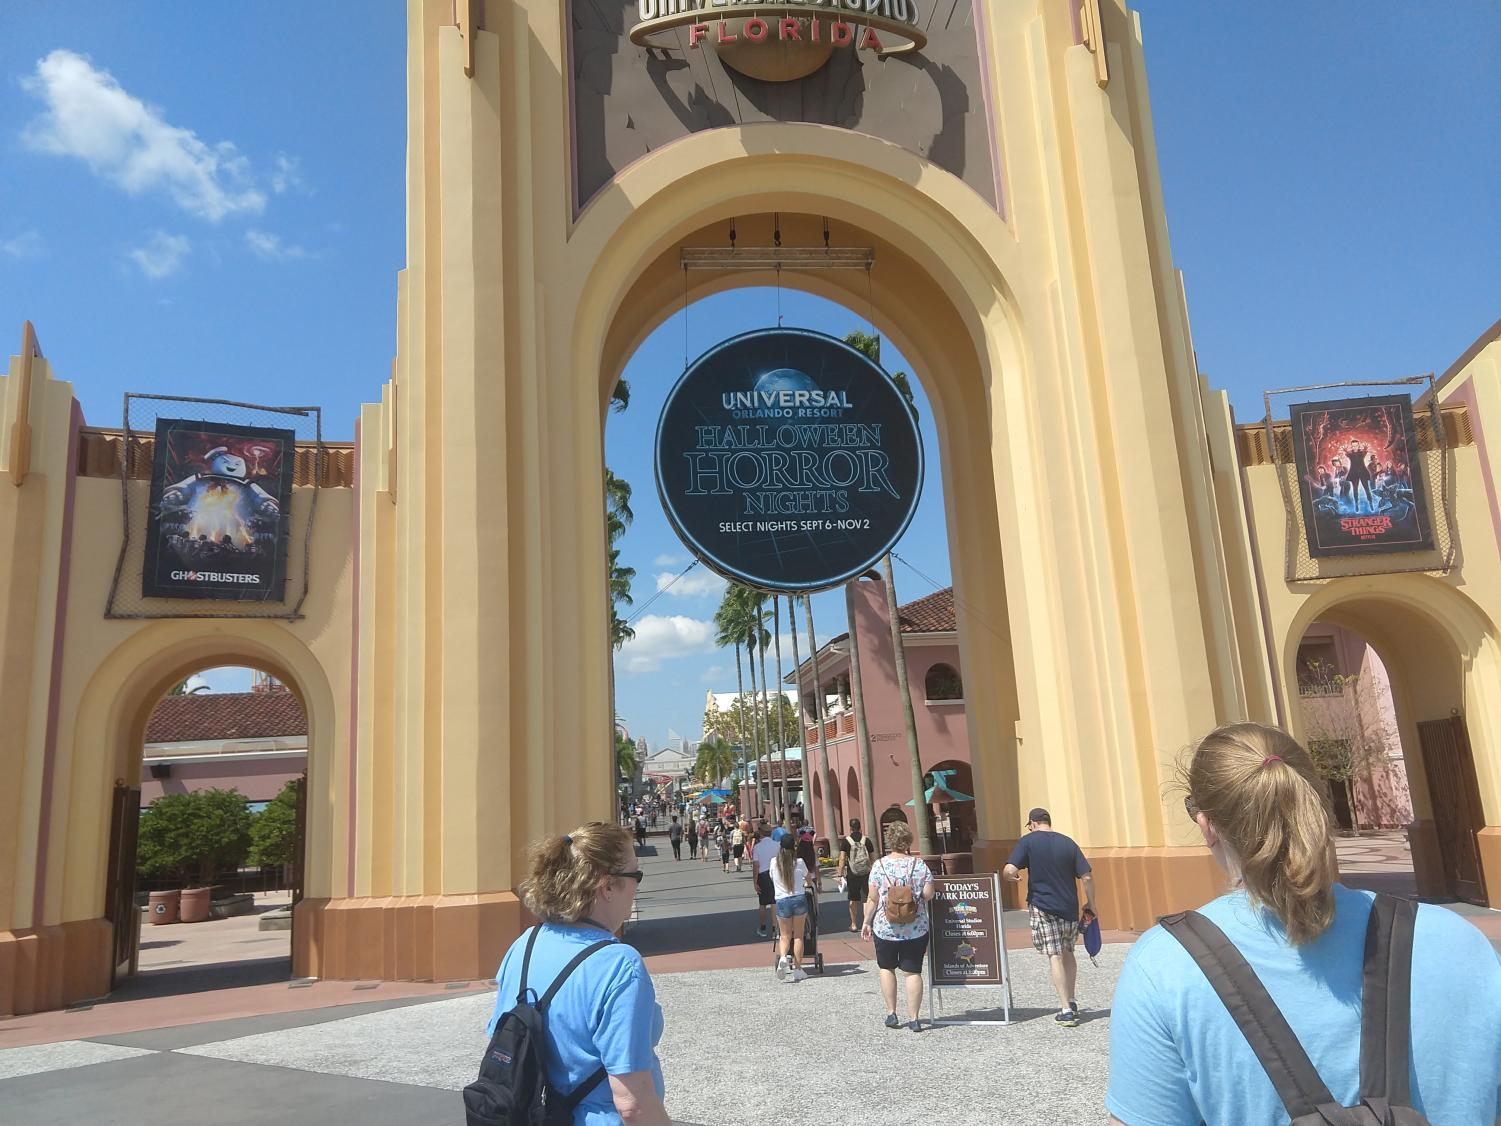 Entrance to the main Universal Studies park with banners promoting the event.